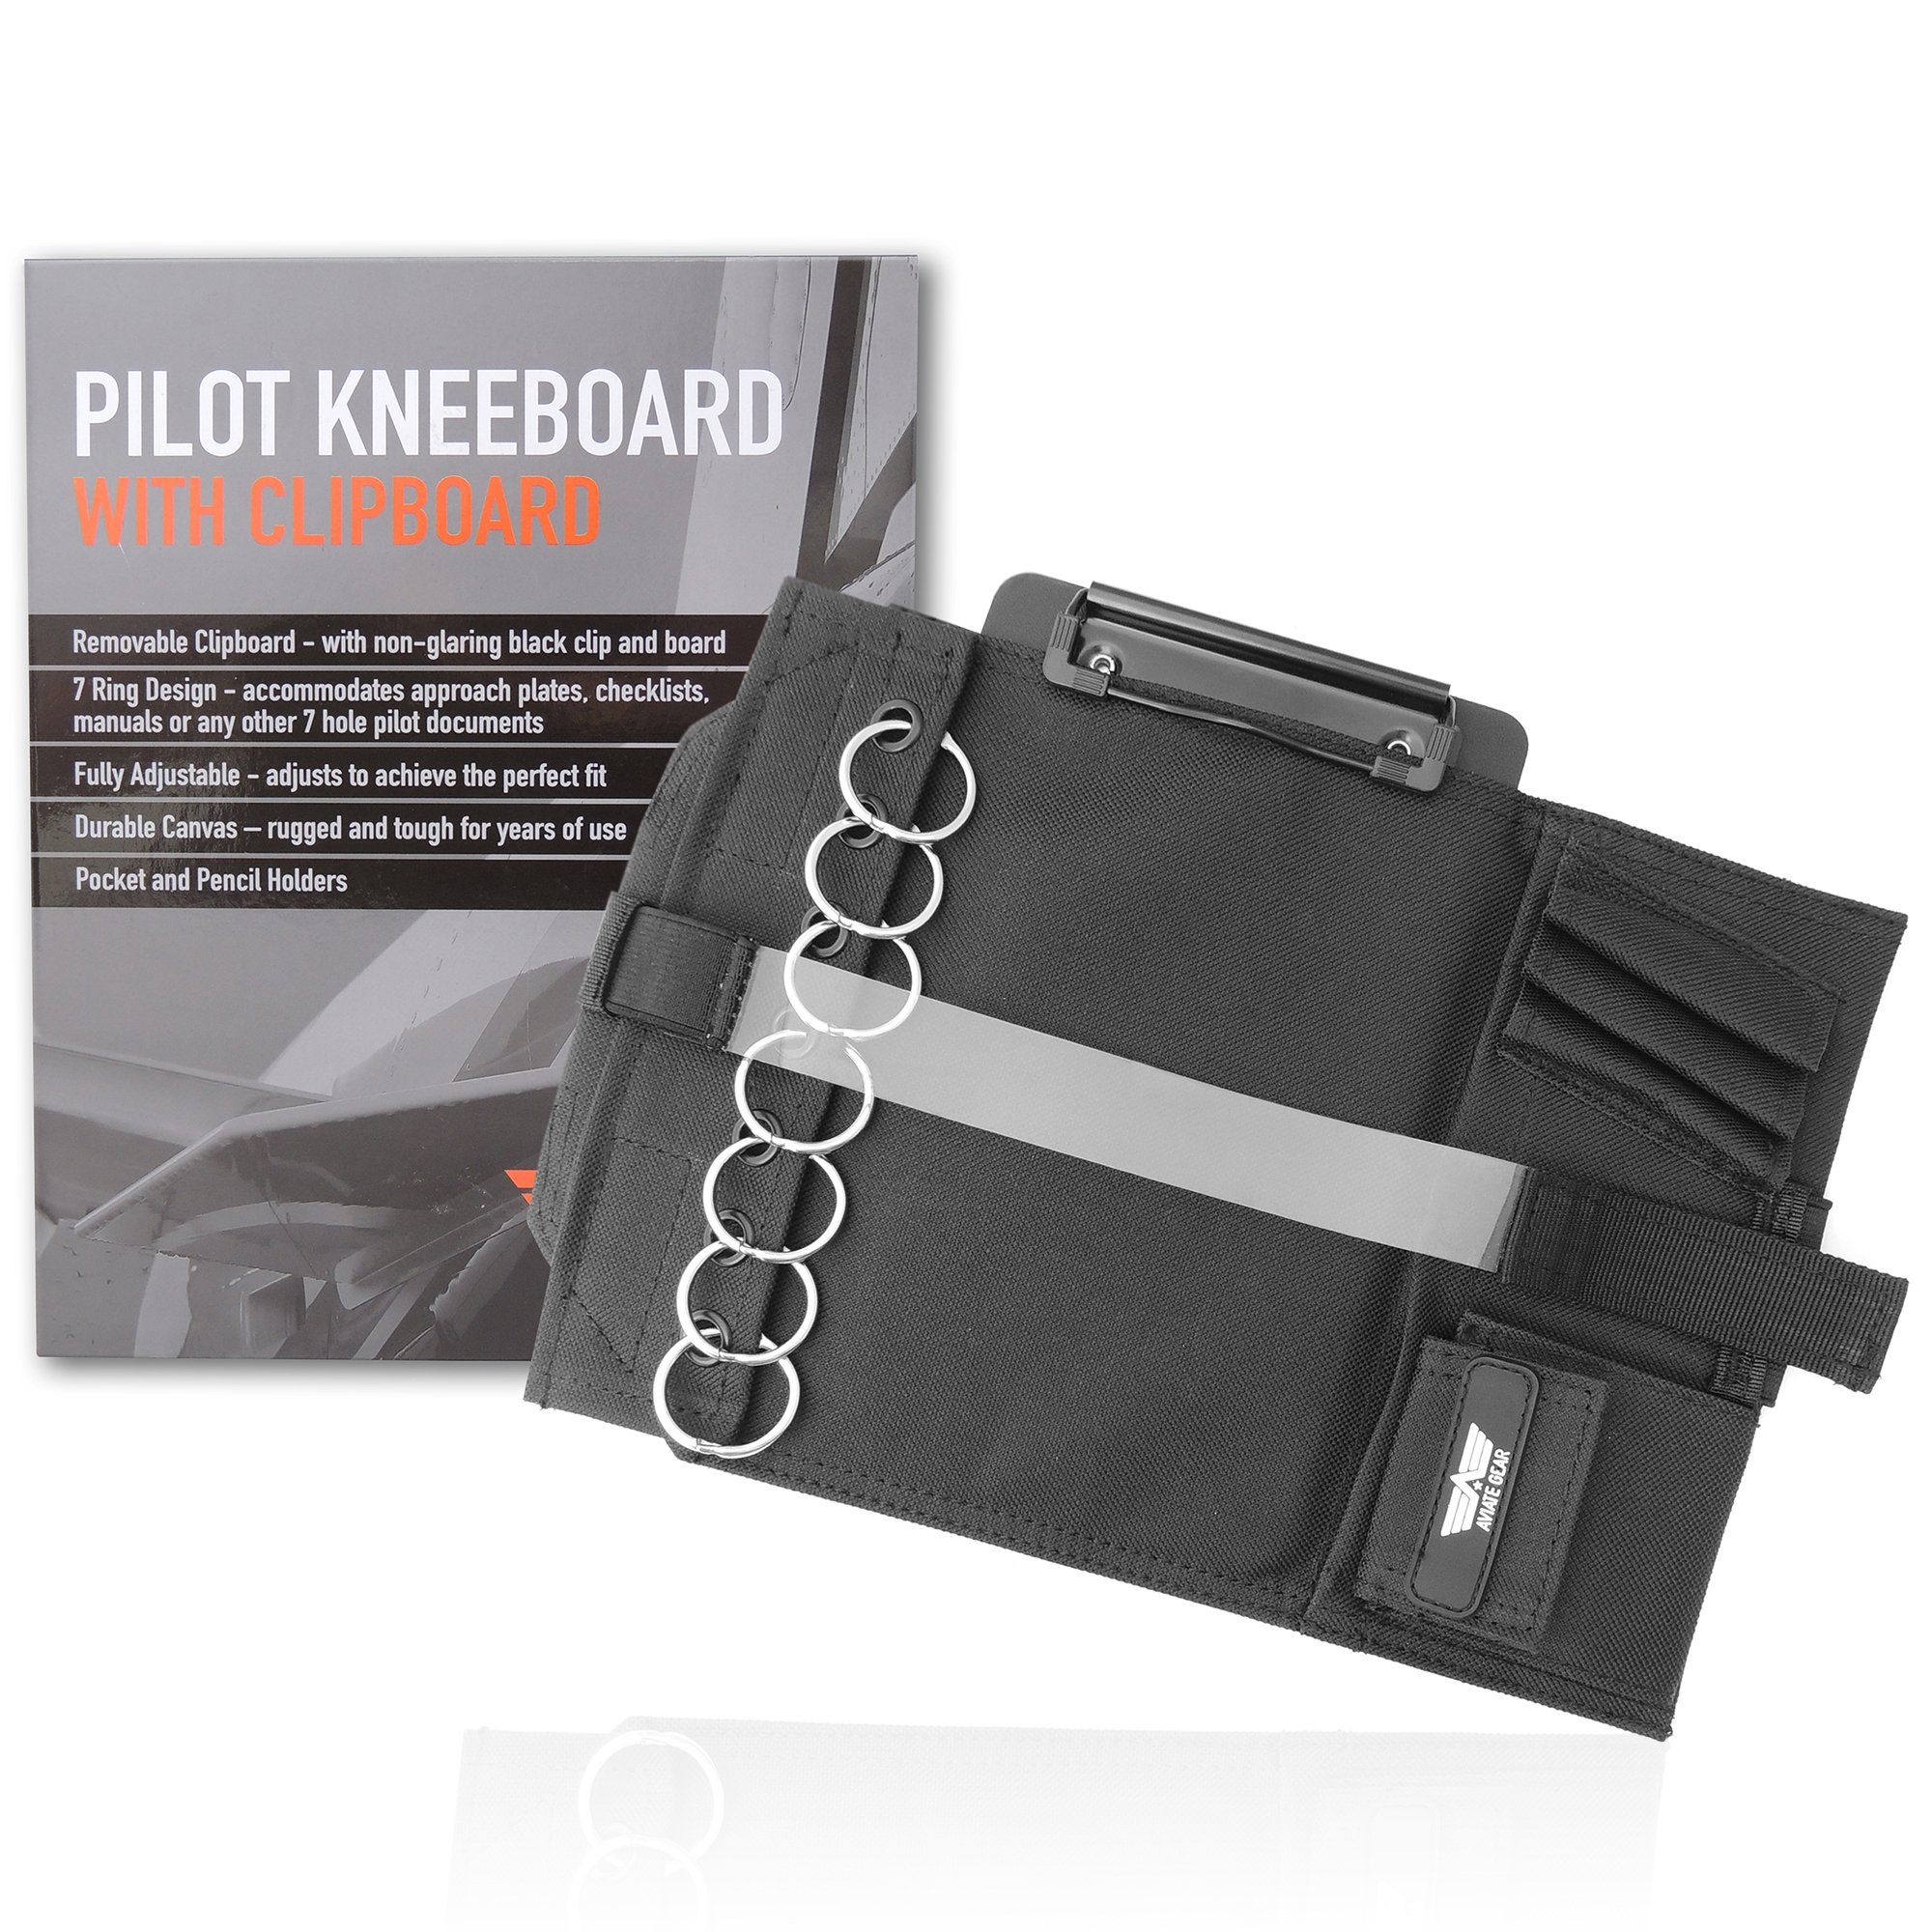 Kneeboard Clipboard Attaching Approach Checklists